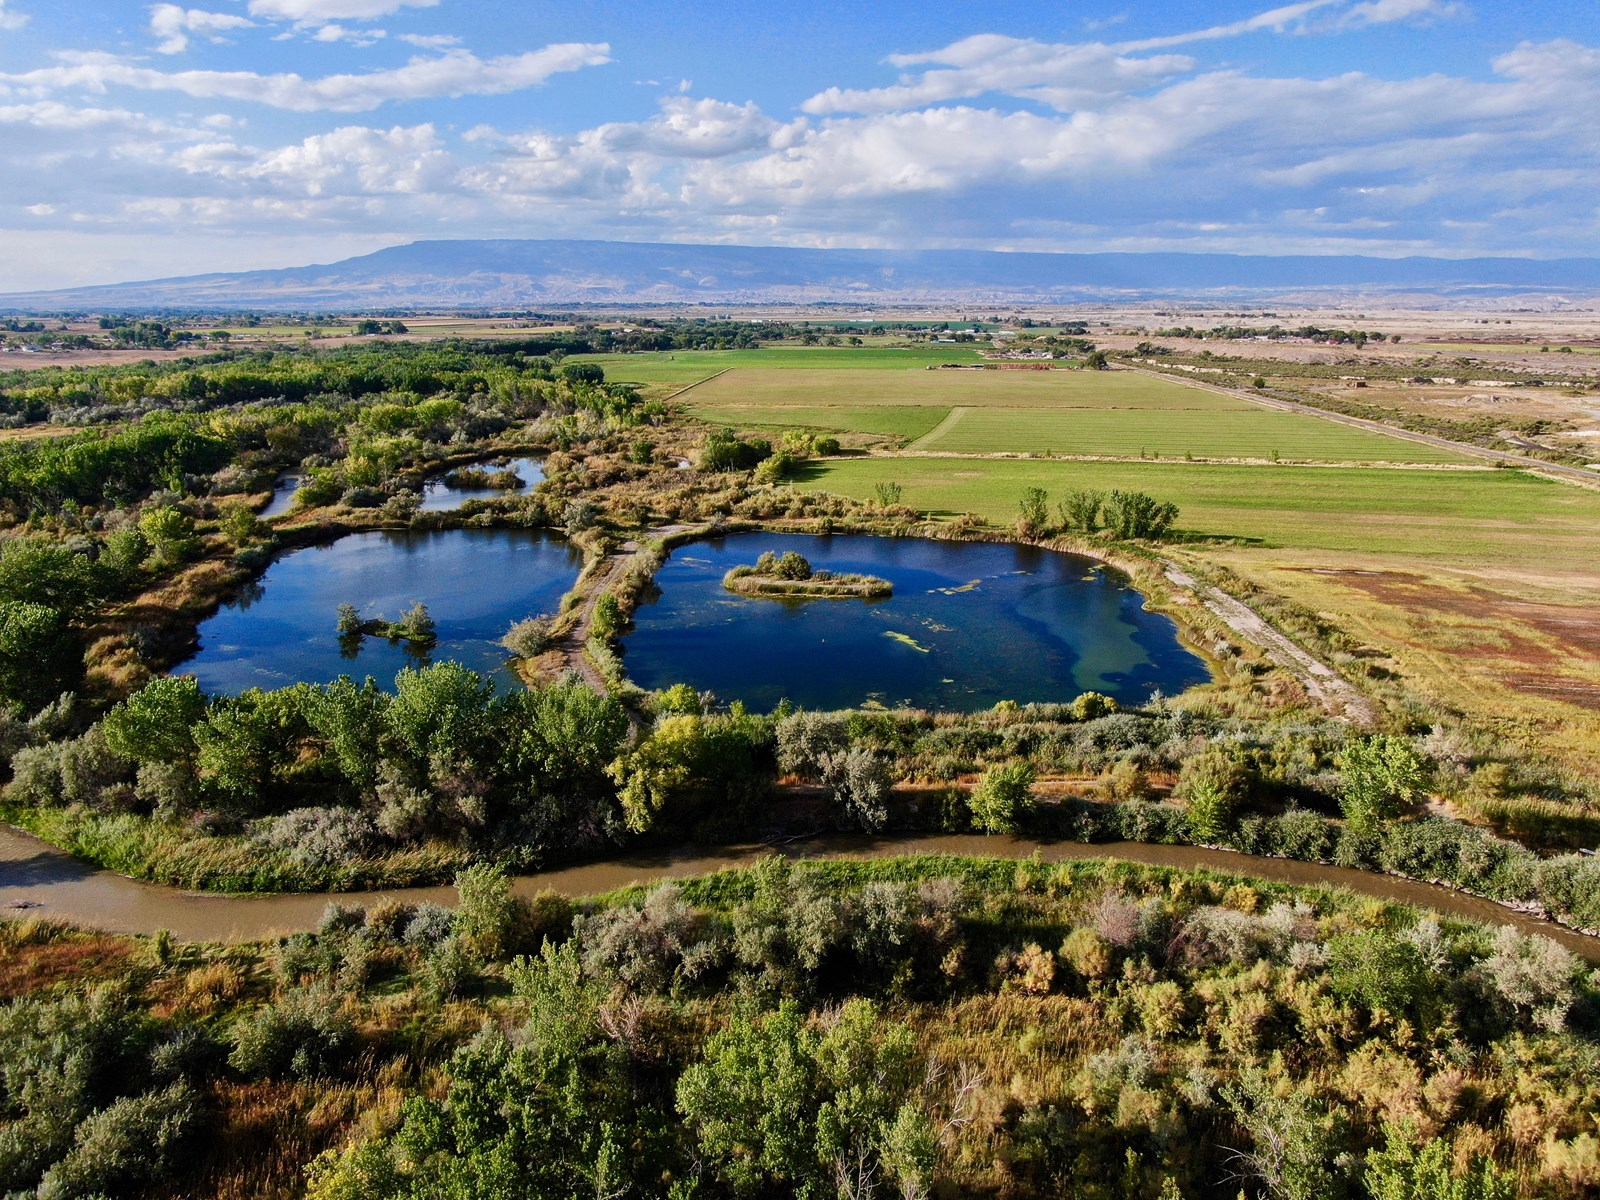 Colorado Duck Hunting Property For Sale in Olathe